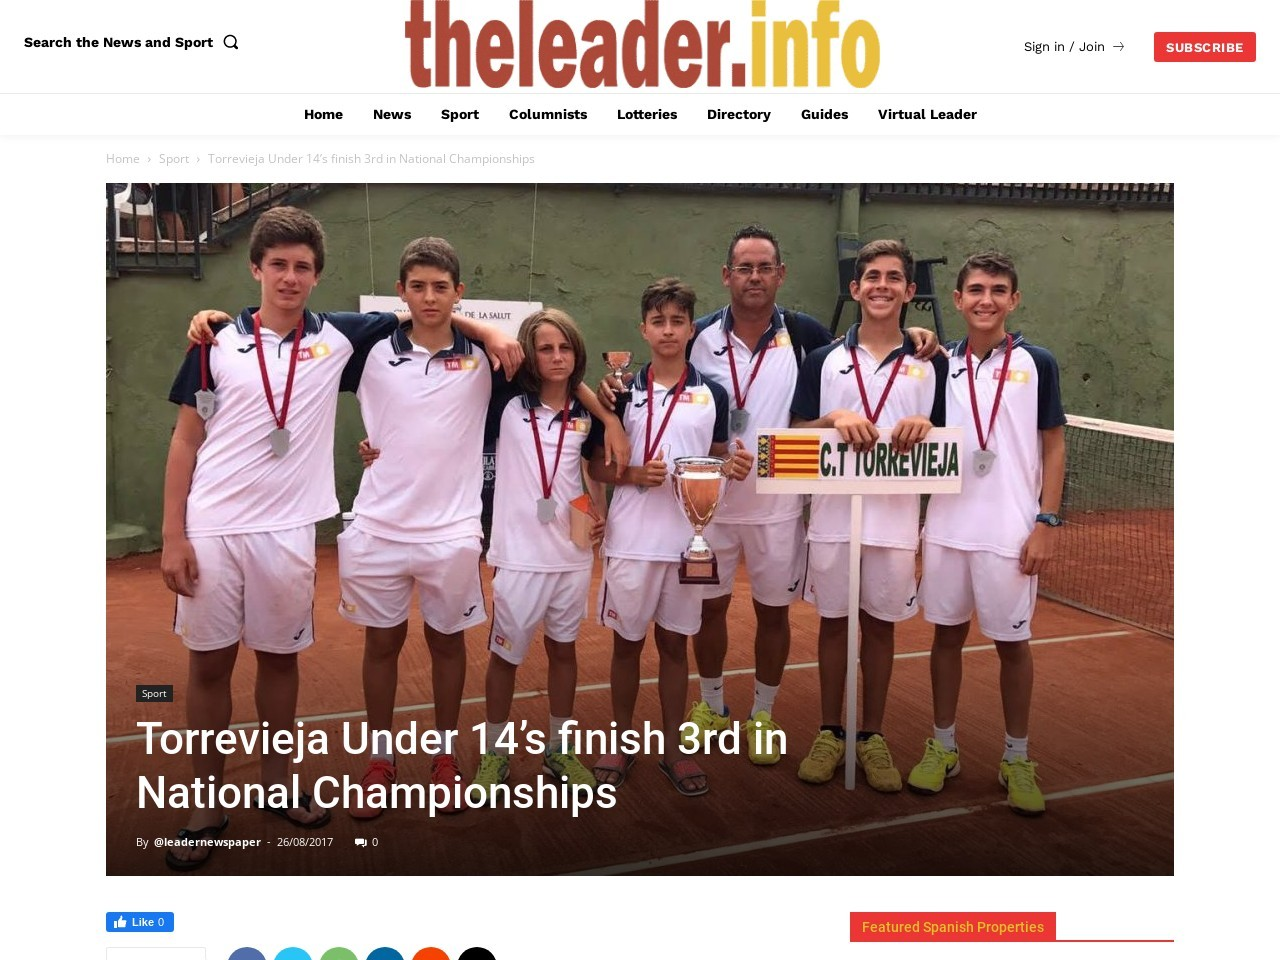 Torrevieja Under 14's finish 3rd in National Championships